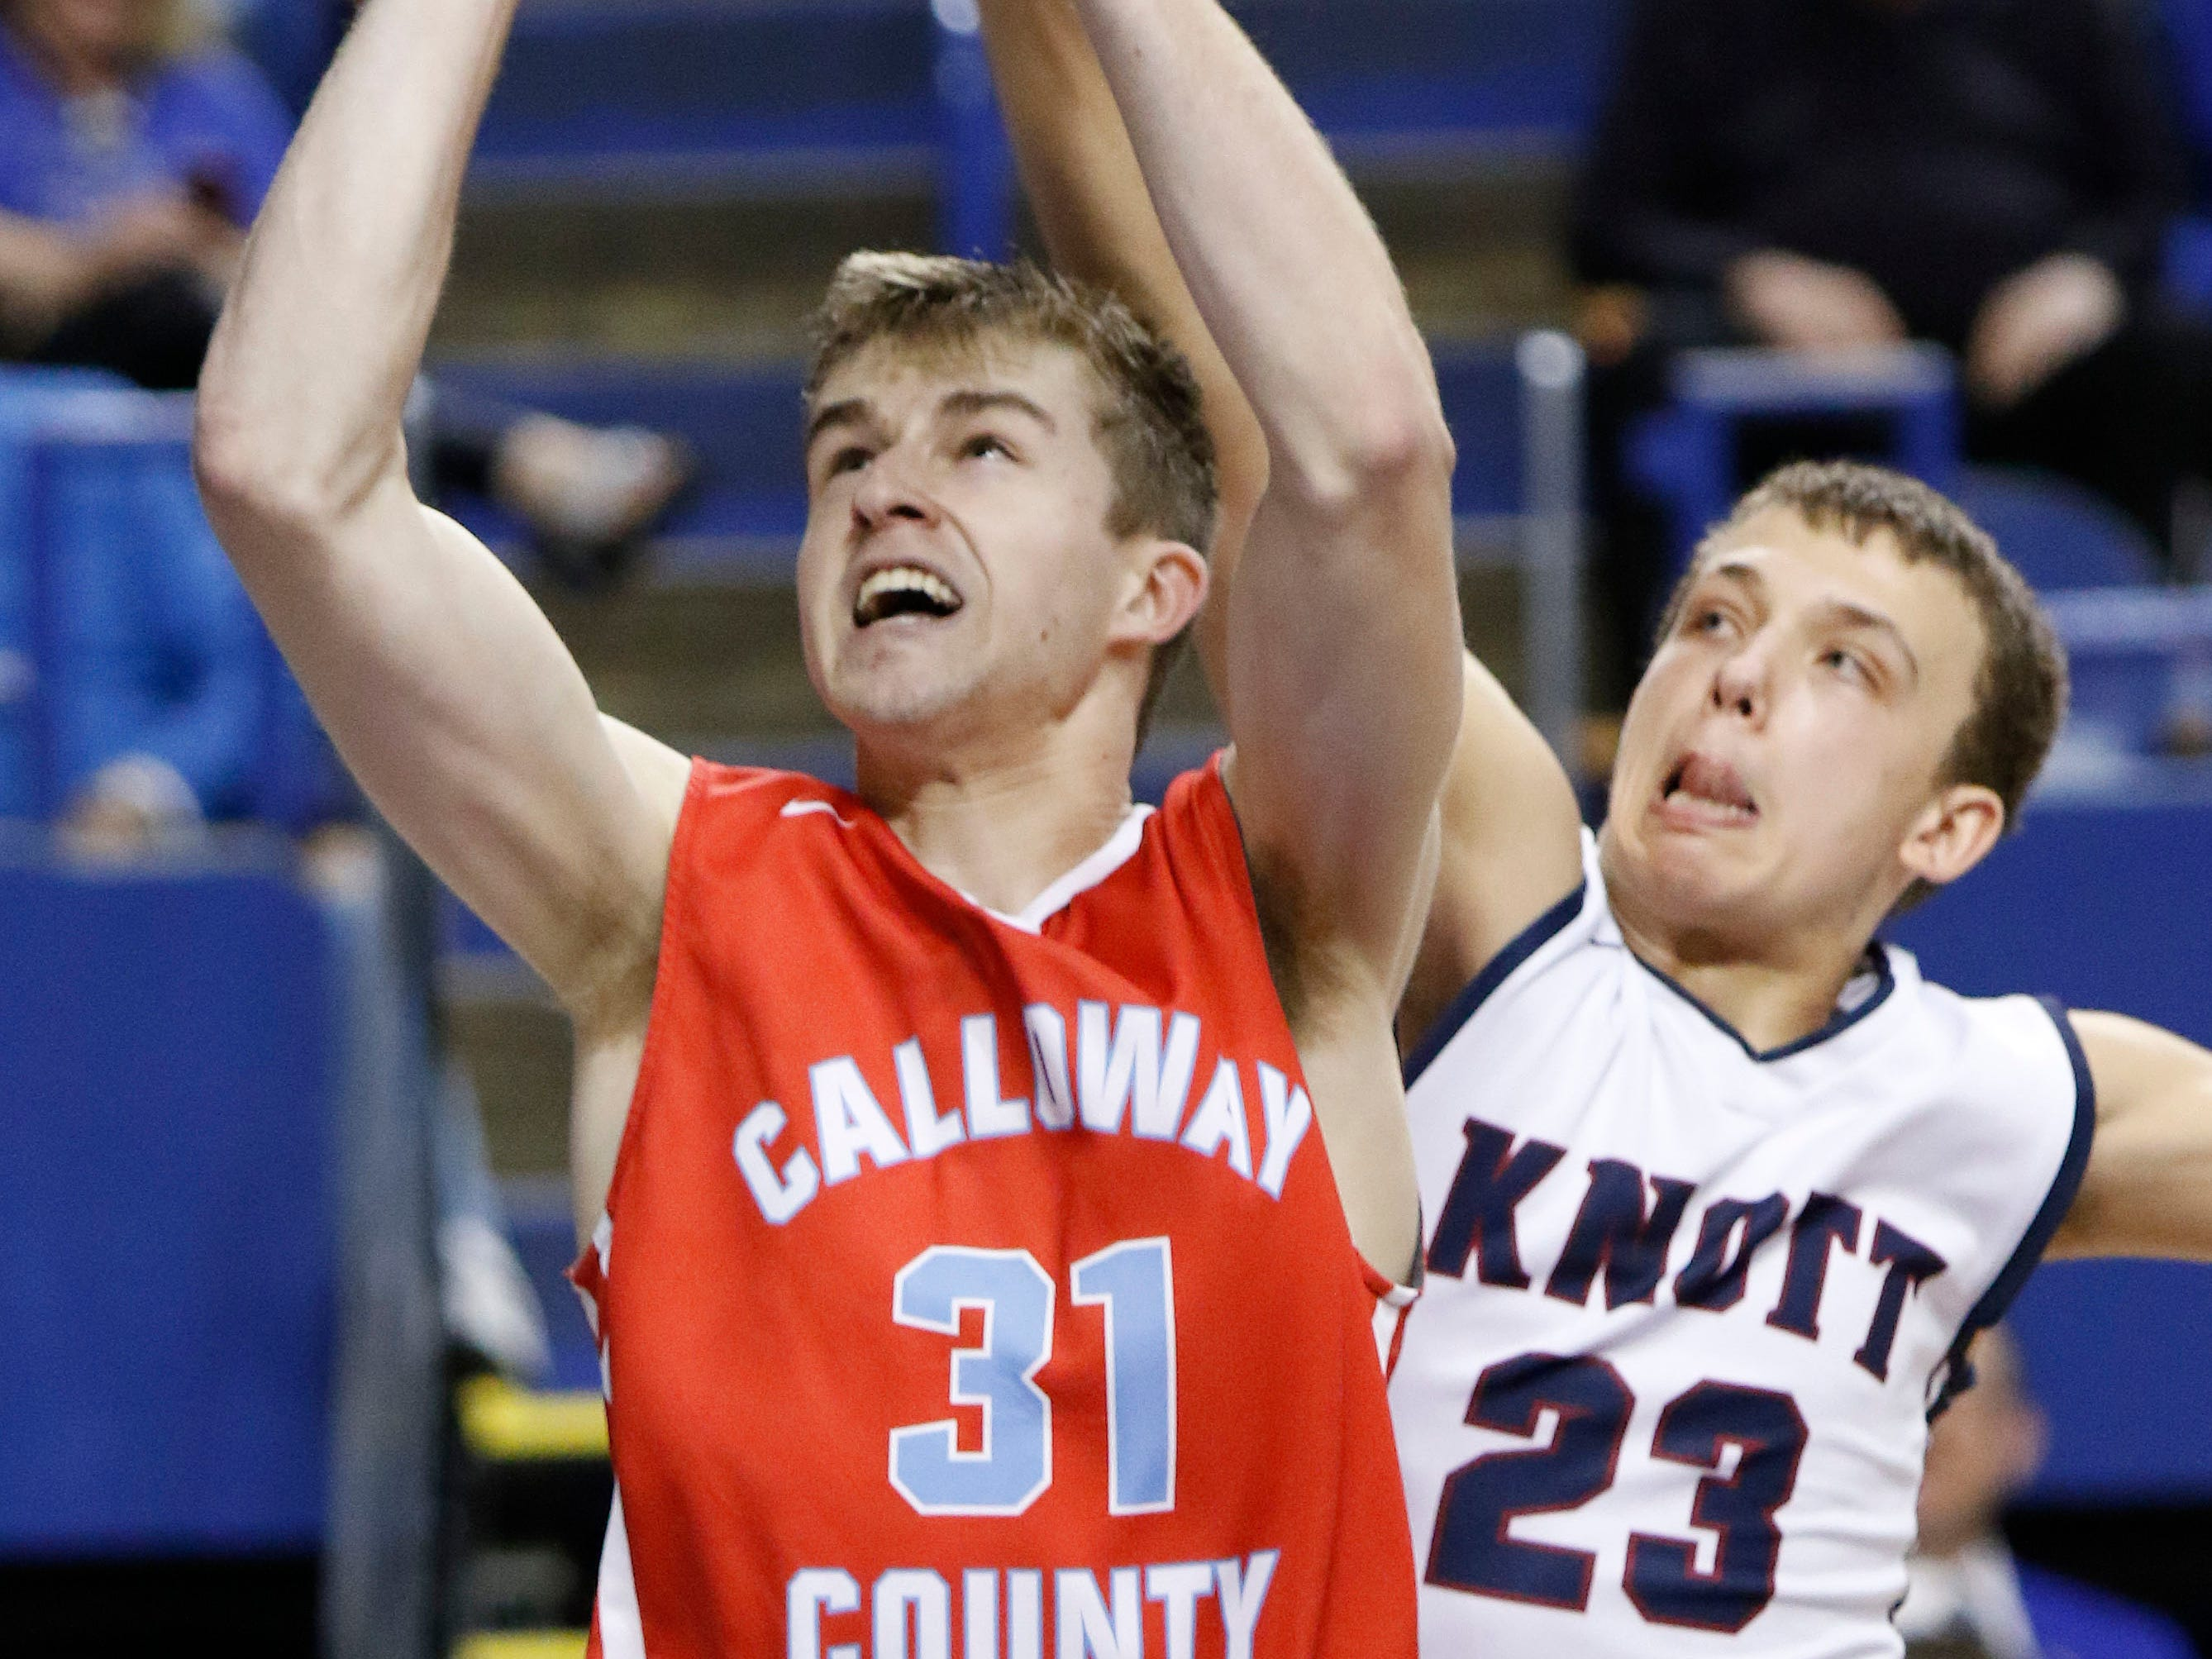 Calloway County's Skyler Hunter (31) shoots against Knott County Central's Isaac Caudill (23) during a first-round KHSAA Sweet 16 game Thursday in Lexington, Ky.